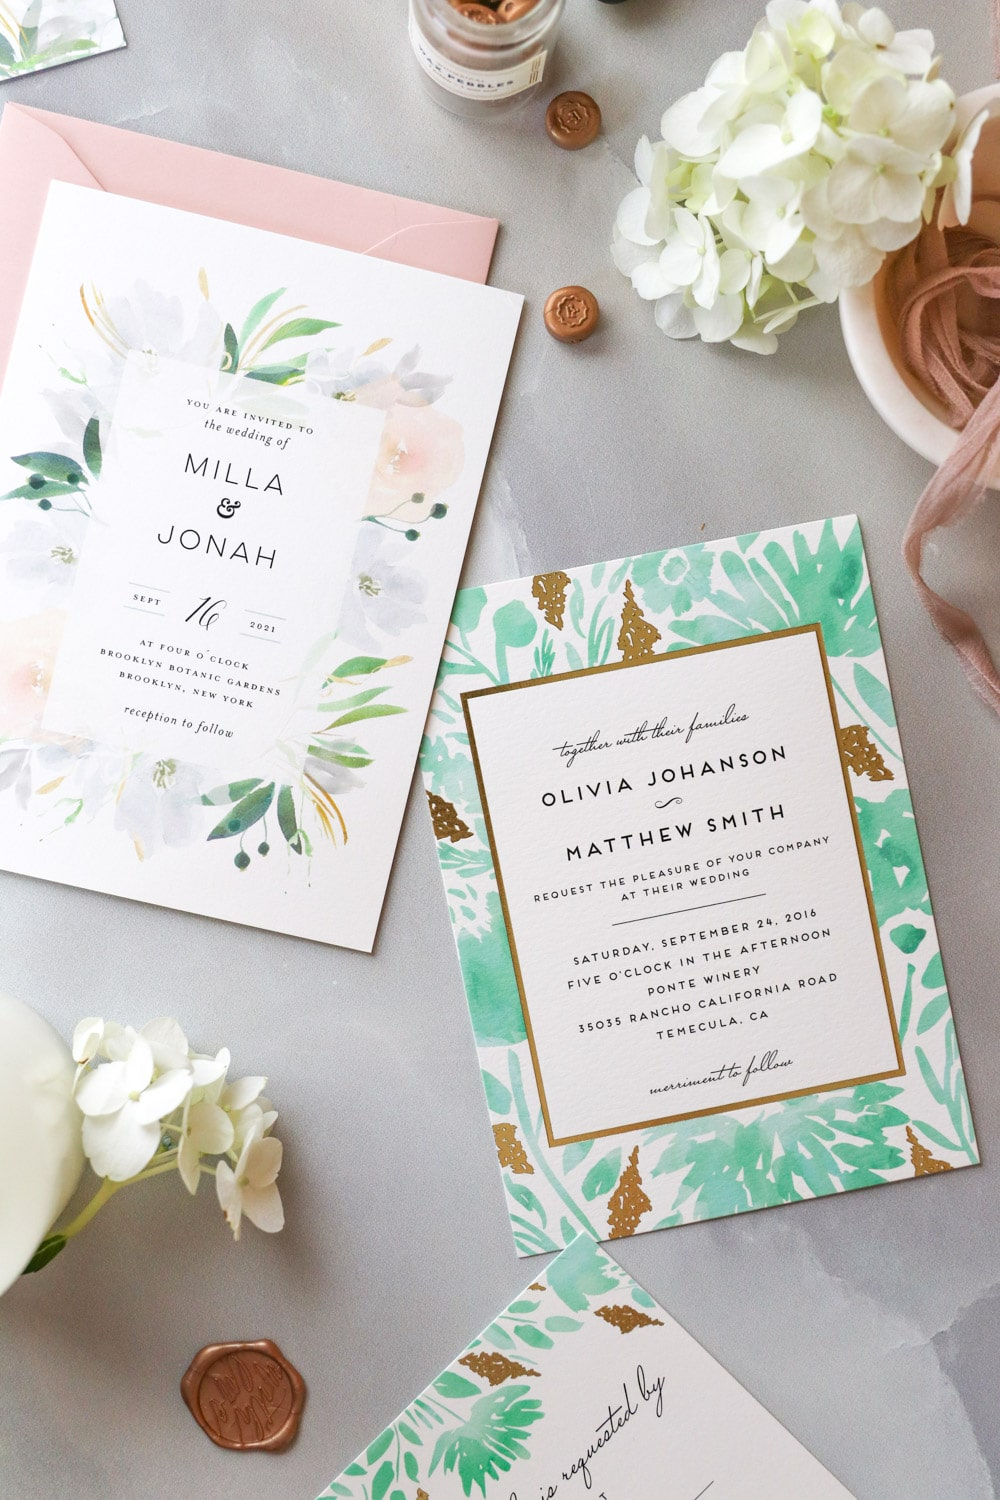 Minted Wedding Website.A Minted Wedding Invitations Review Aka What We Honestly Think Of